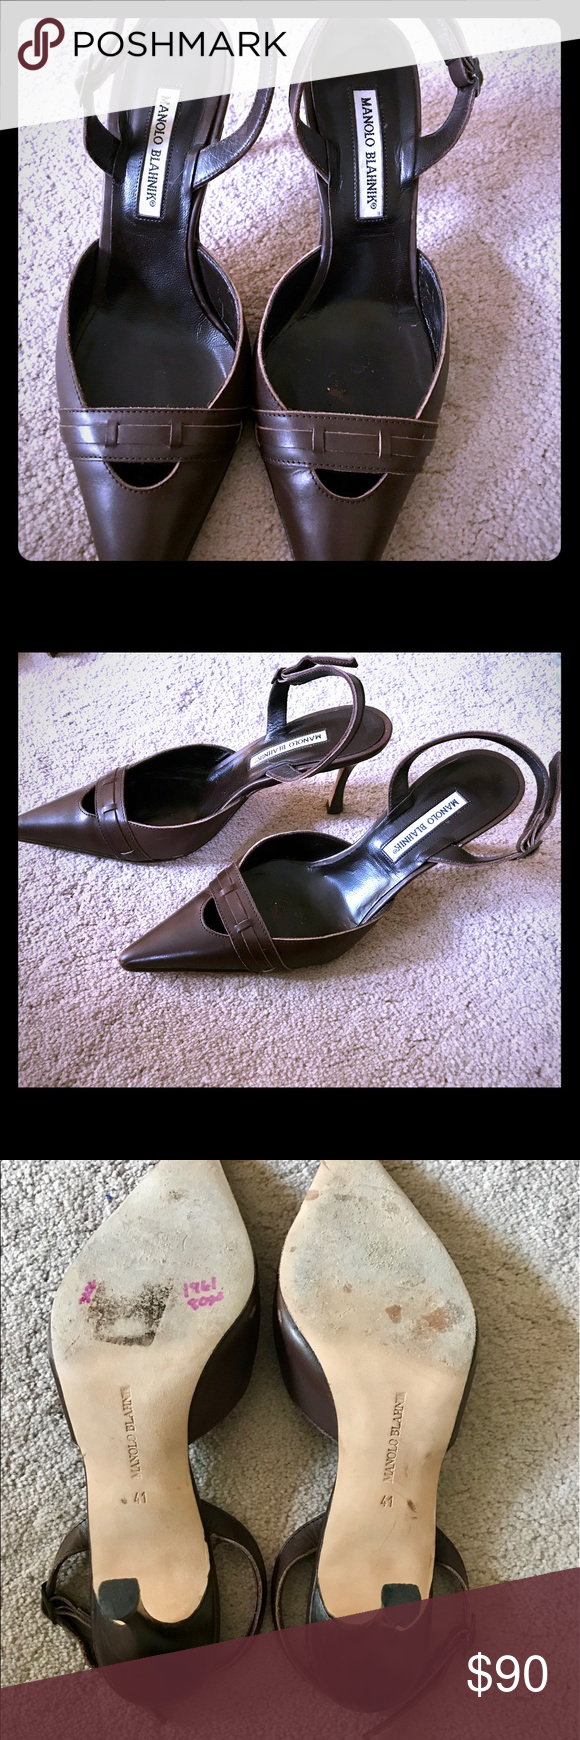 Manolo Blahnik heels! 100% authentic! Mint!! Adorable chocolate brown heels in mint condition! Perfect dressed up or down. Super comfortable. Only worn once. Manolo Blahnik Shoes